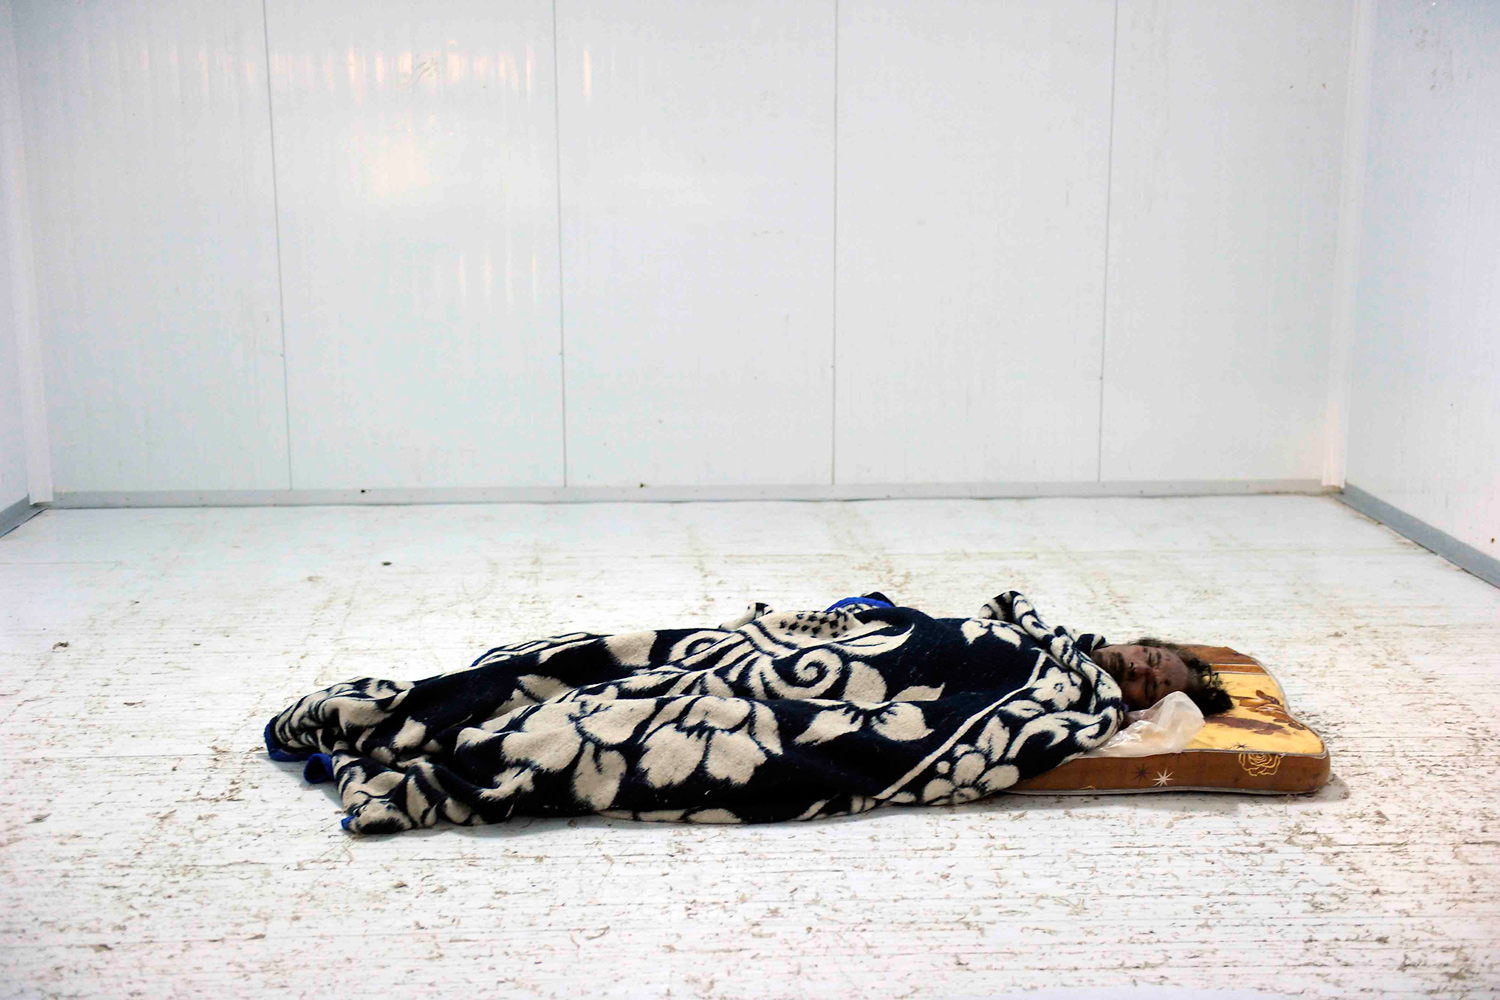 October 22, 2011. The body of former Libyan dictator Gaddafi lays in a refrigerated chamber usually used for storing vegetables in the Arab Market in Misrata.